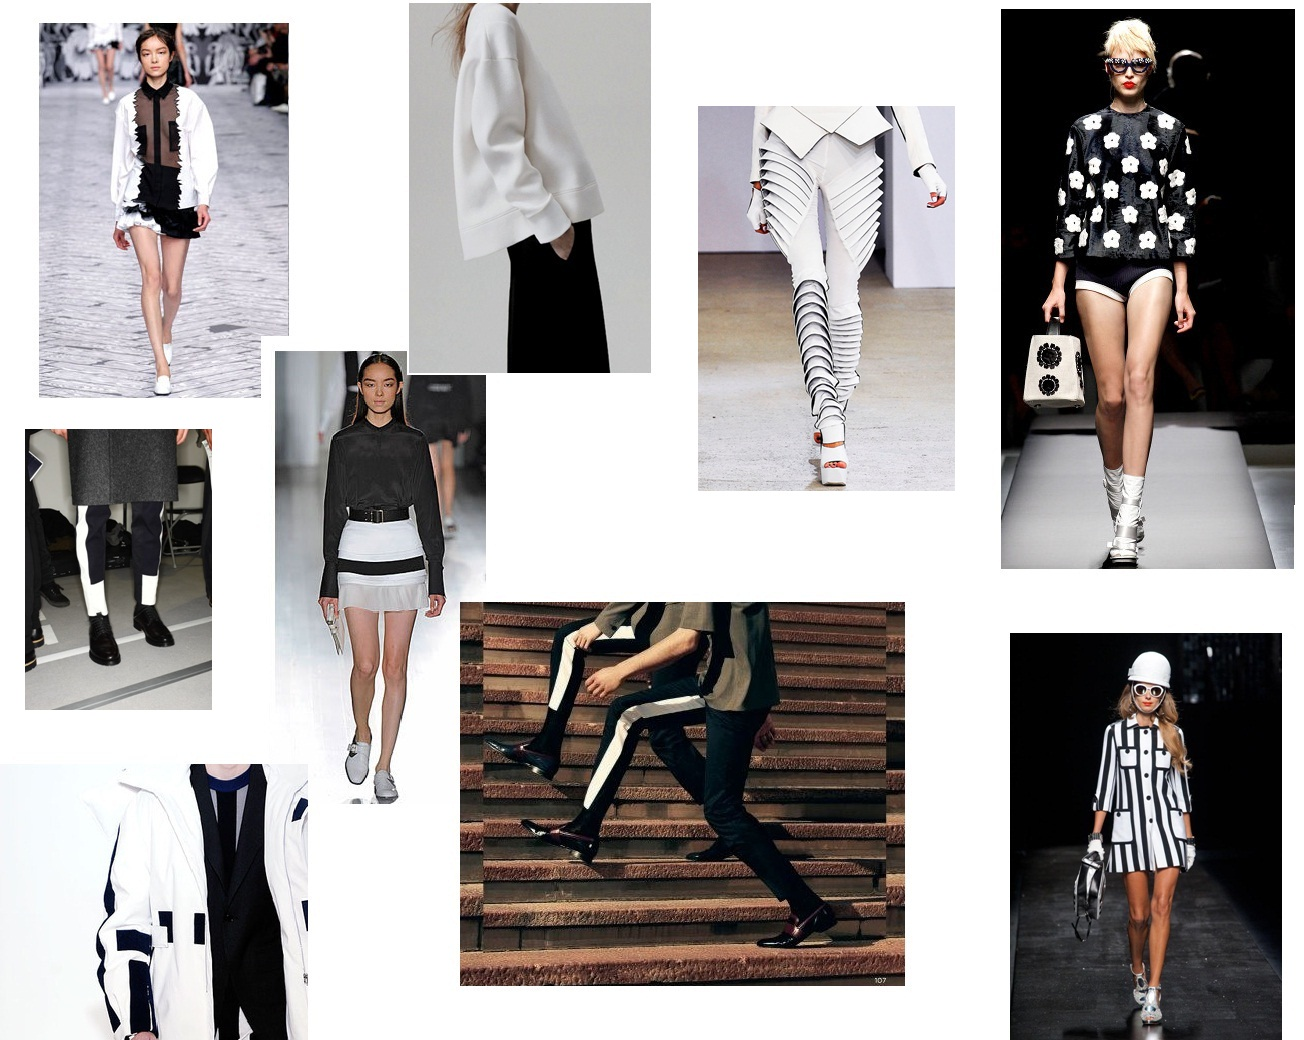 NEON THOUGHTS : TREND :MONOCHROME, SIMPLICITY NEVER LOOK